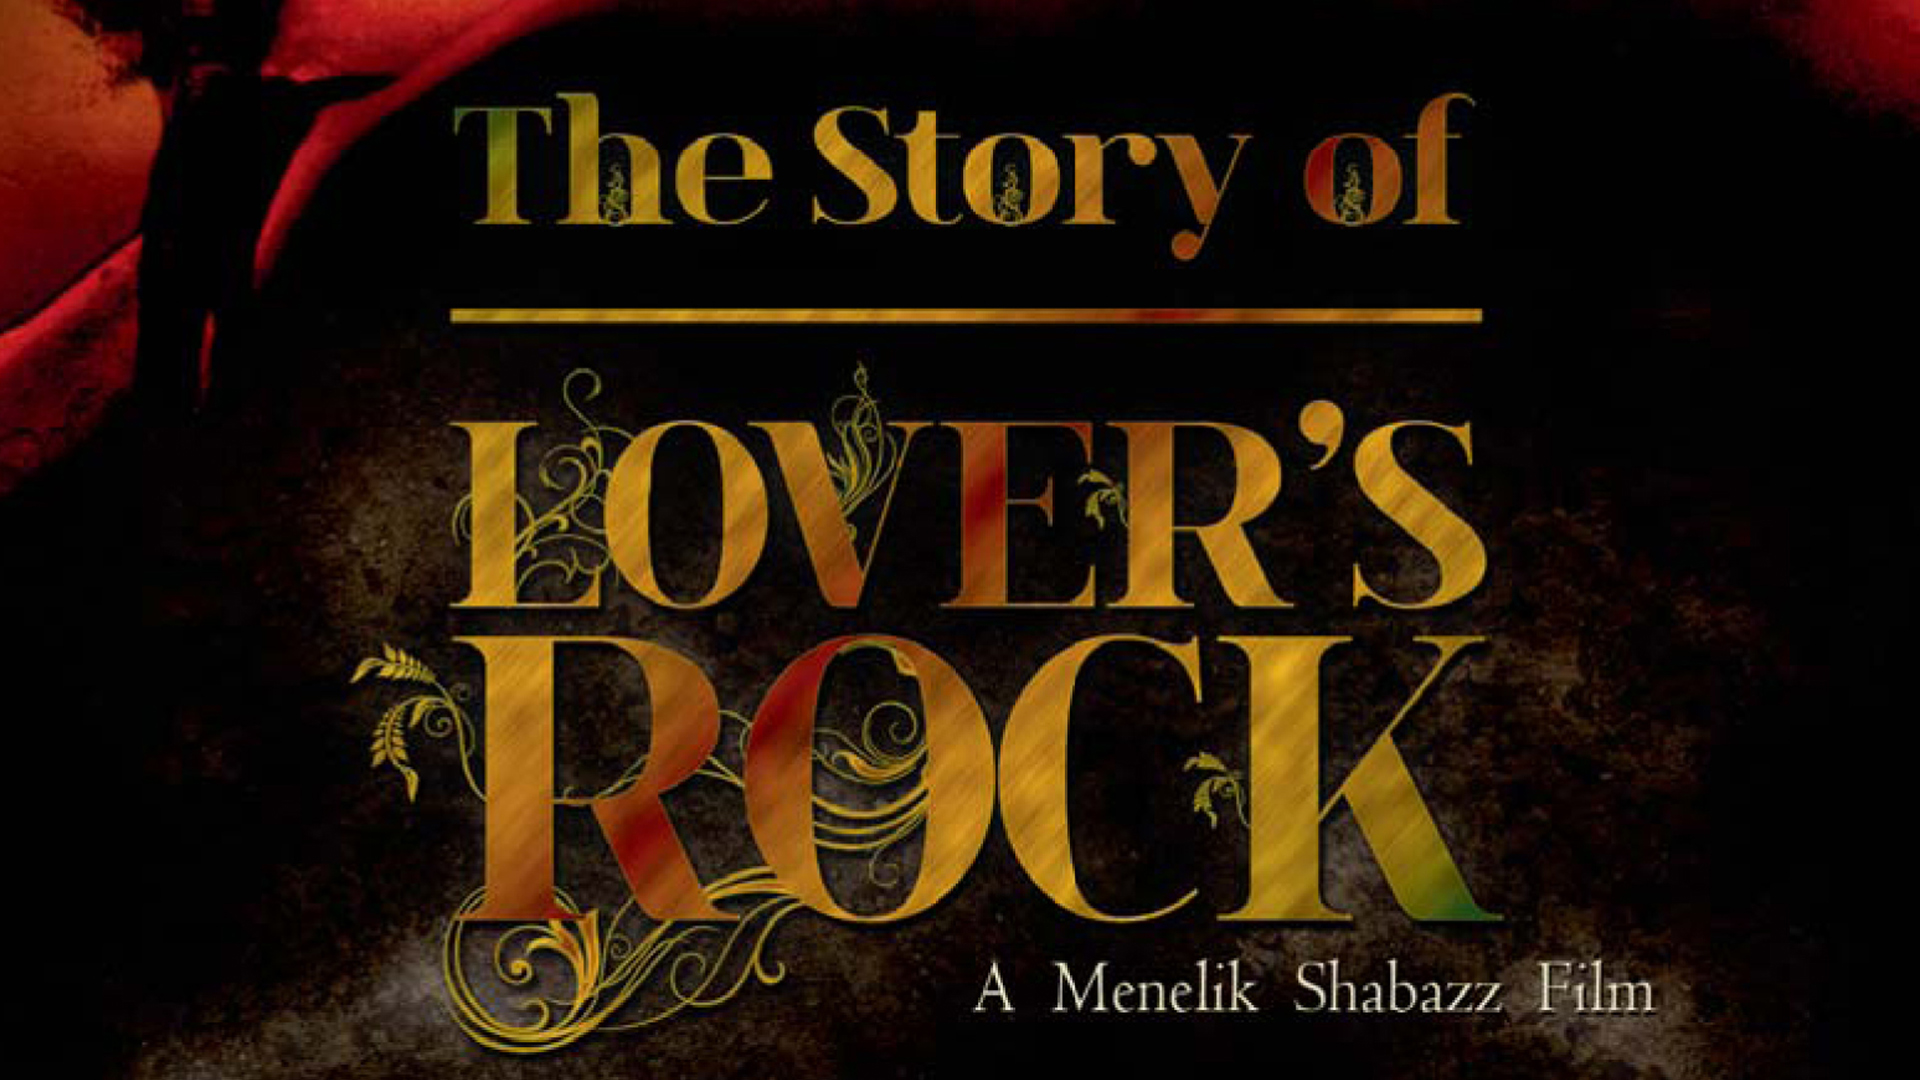 The Story of Lovers Rock